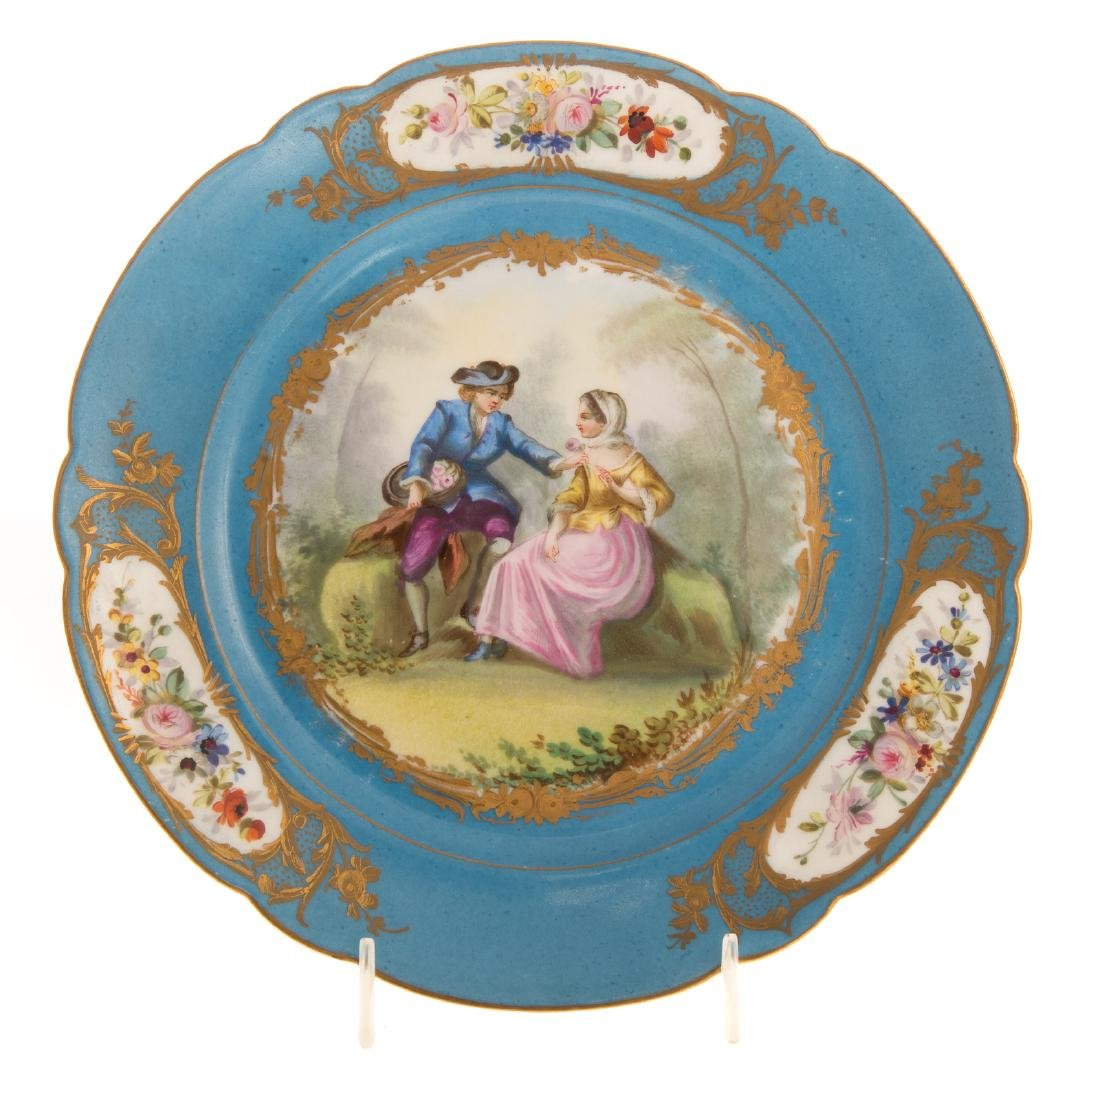 12 Sevres porcelain plates and charger - 4